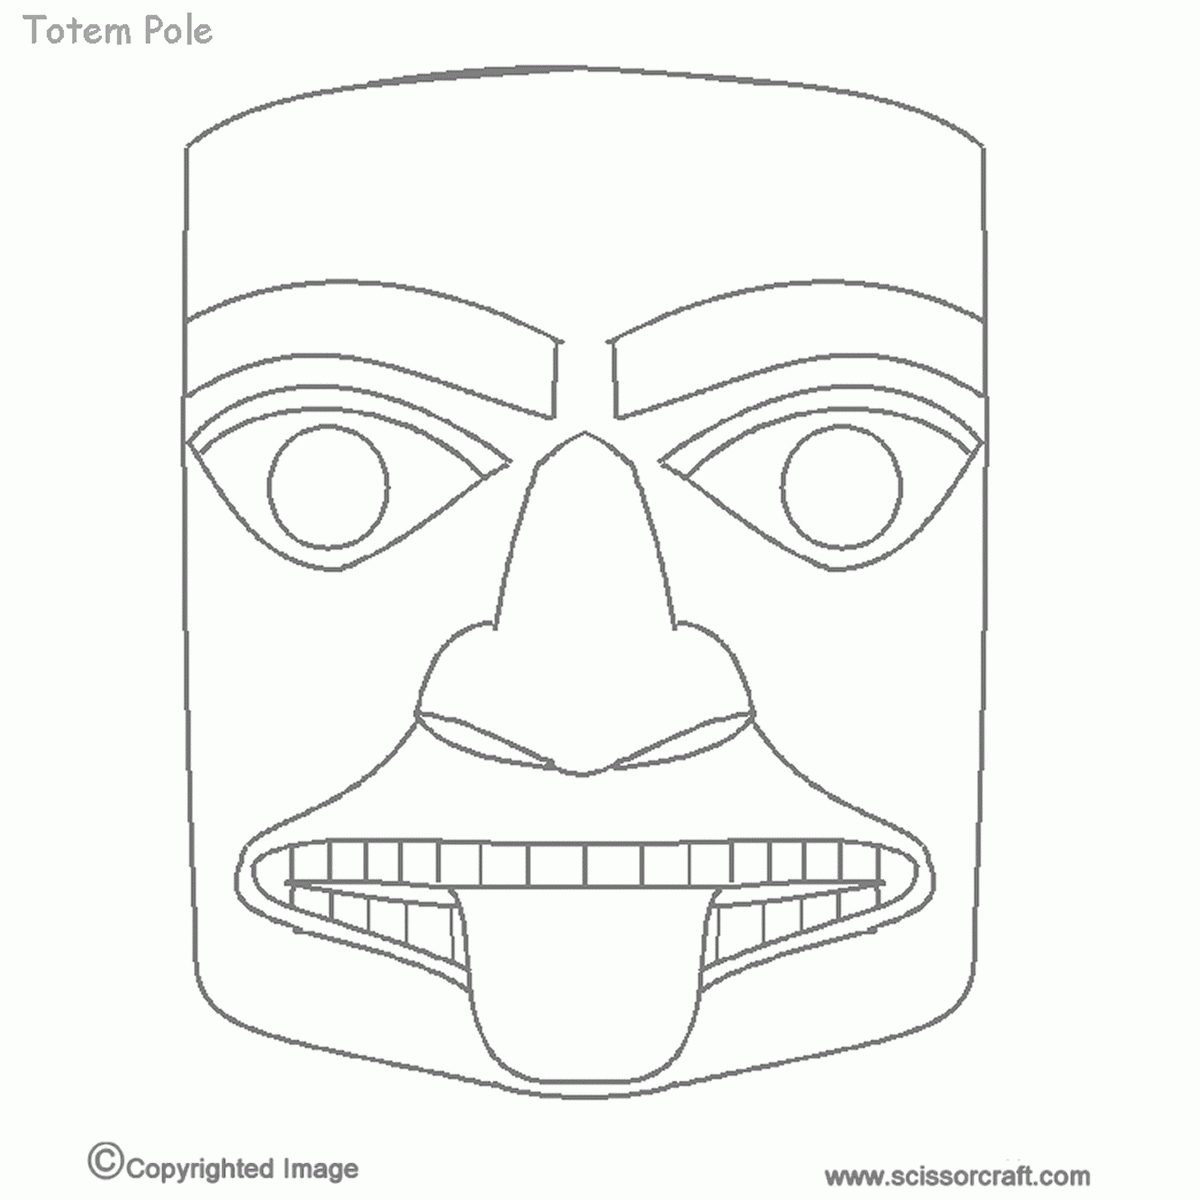 totem pole coloring pages - coloring pages of totem poles